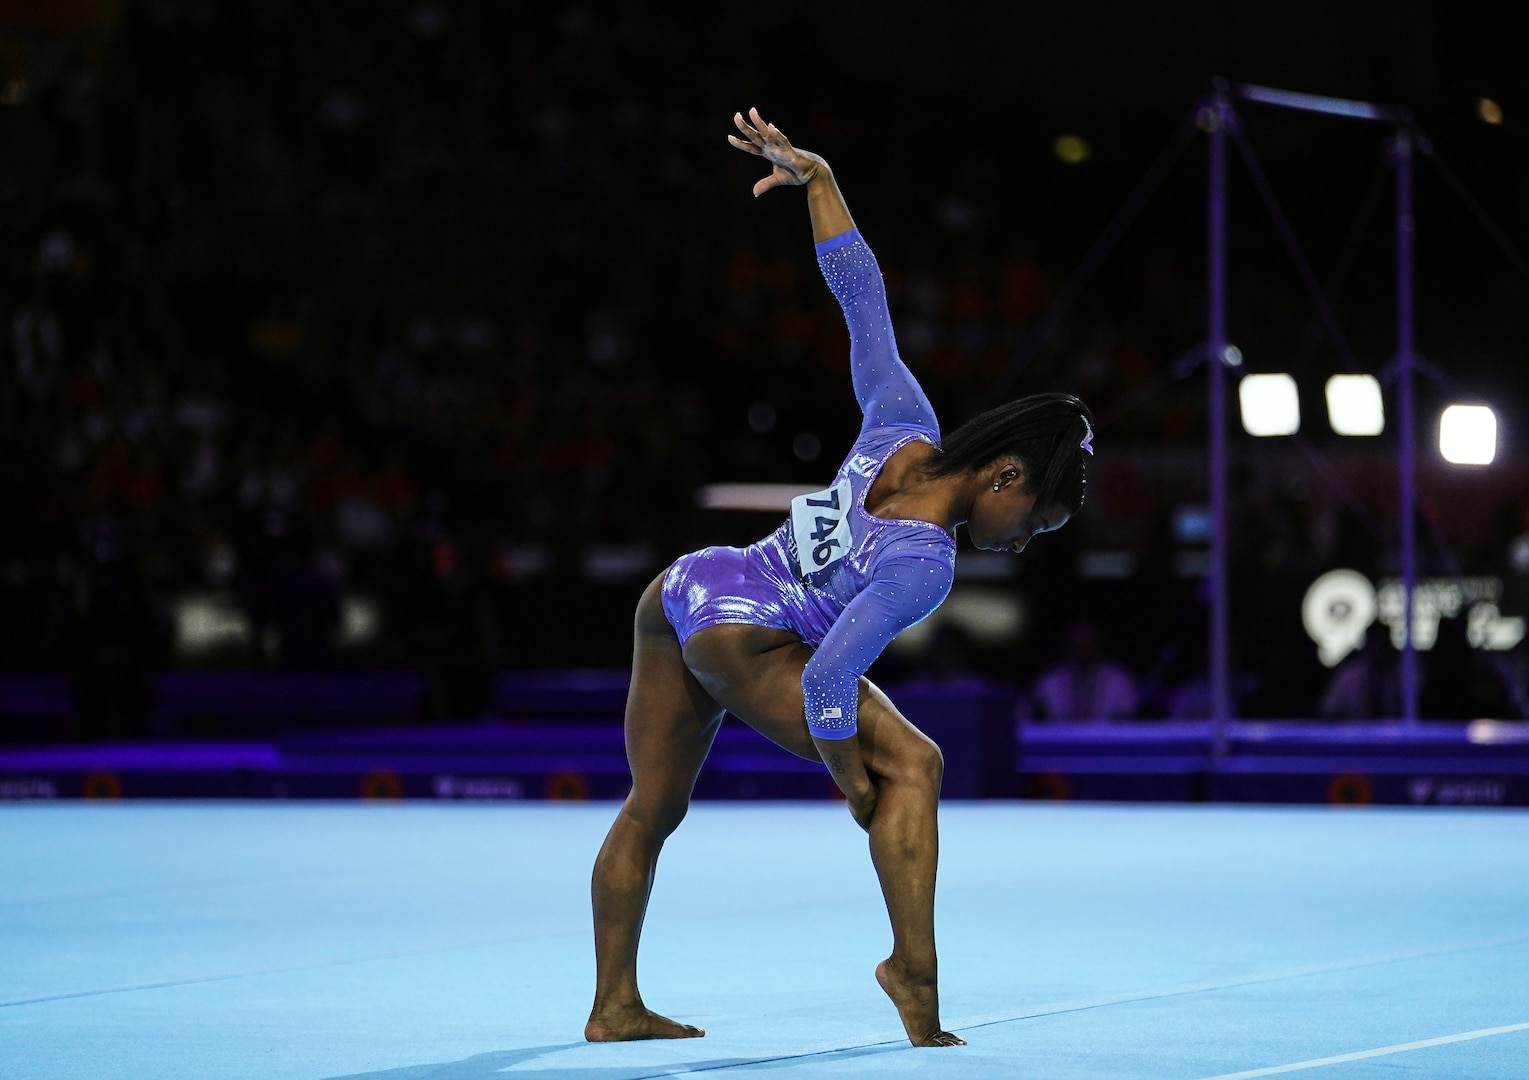 A gymnast performs on floor exercise.